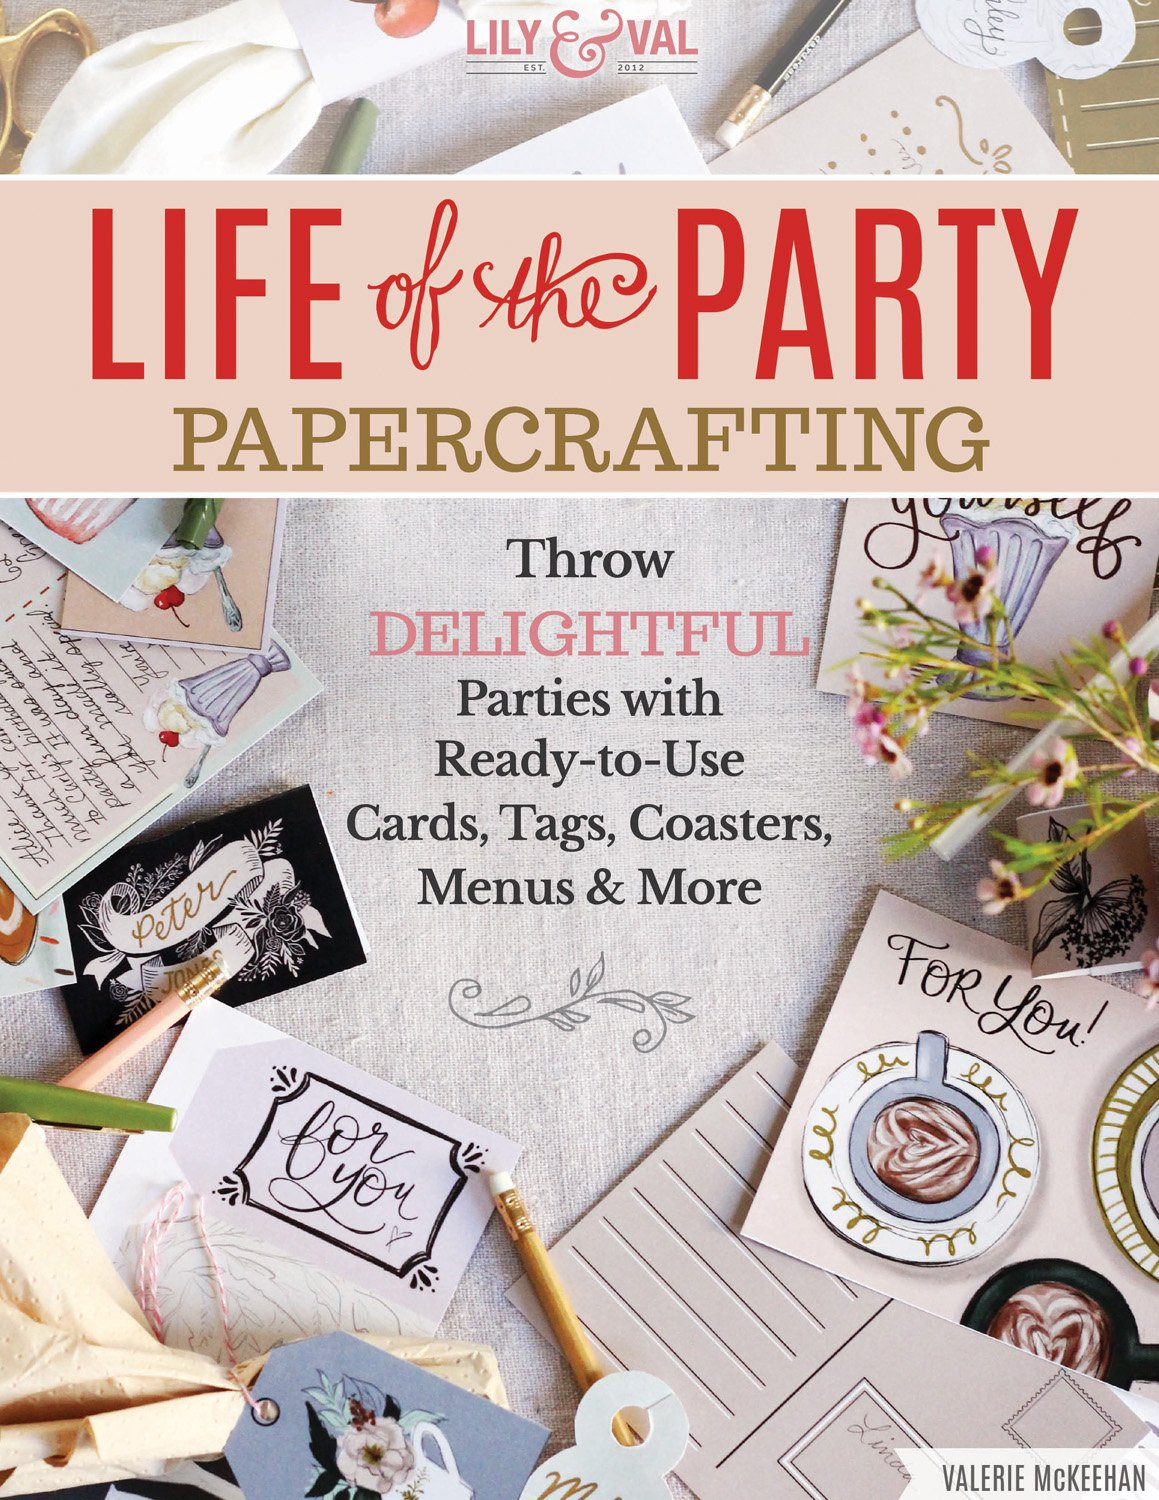 Life of the Party Papercrafting: Throw Delightful Parties with Ready-to-Use Cards, Tags, Coasters, Menus & More (Design Originals) Over 100 Festive Paper Crafts, plus 16 Pages of Scrapbook Paper